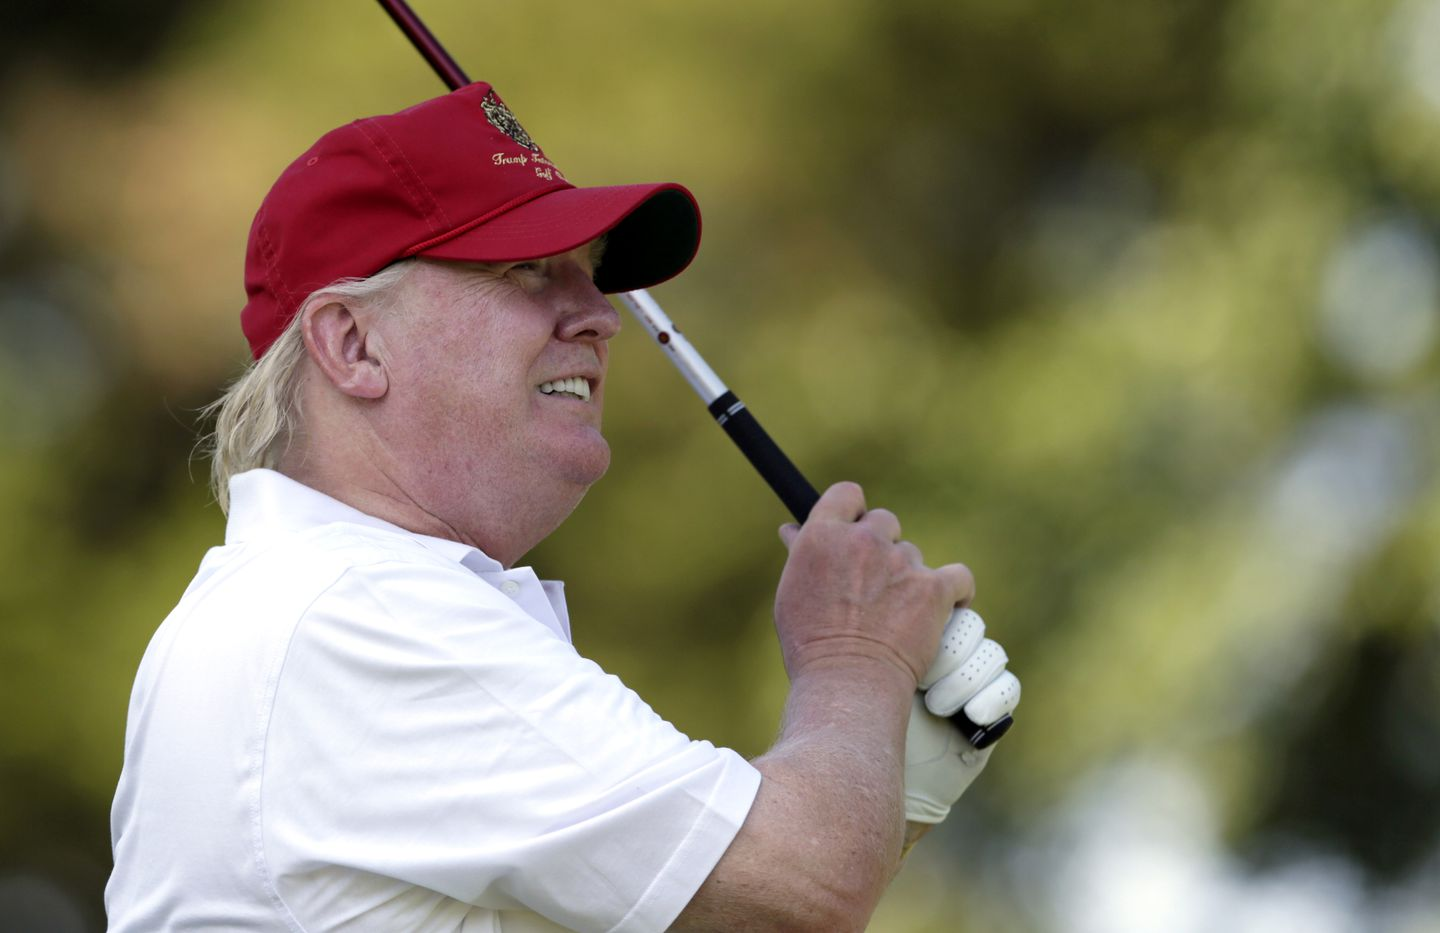 Did Trump Golf This Weekend The White House Won T Say The Boston Globe